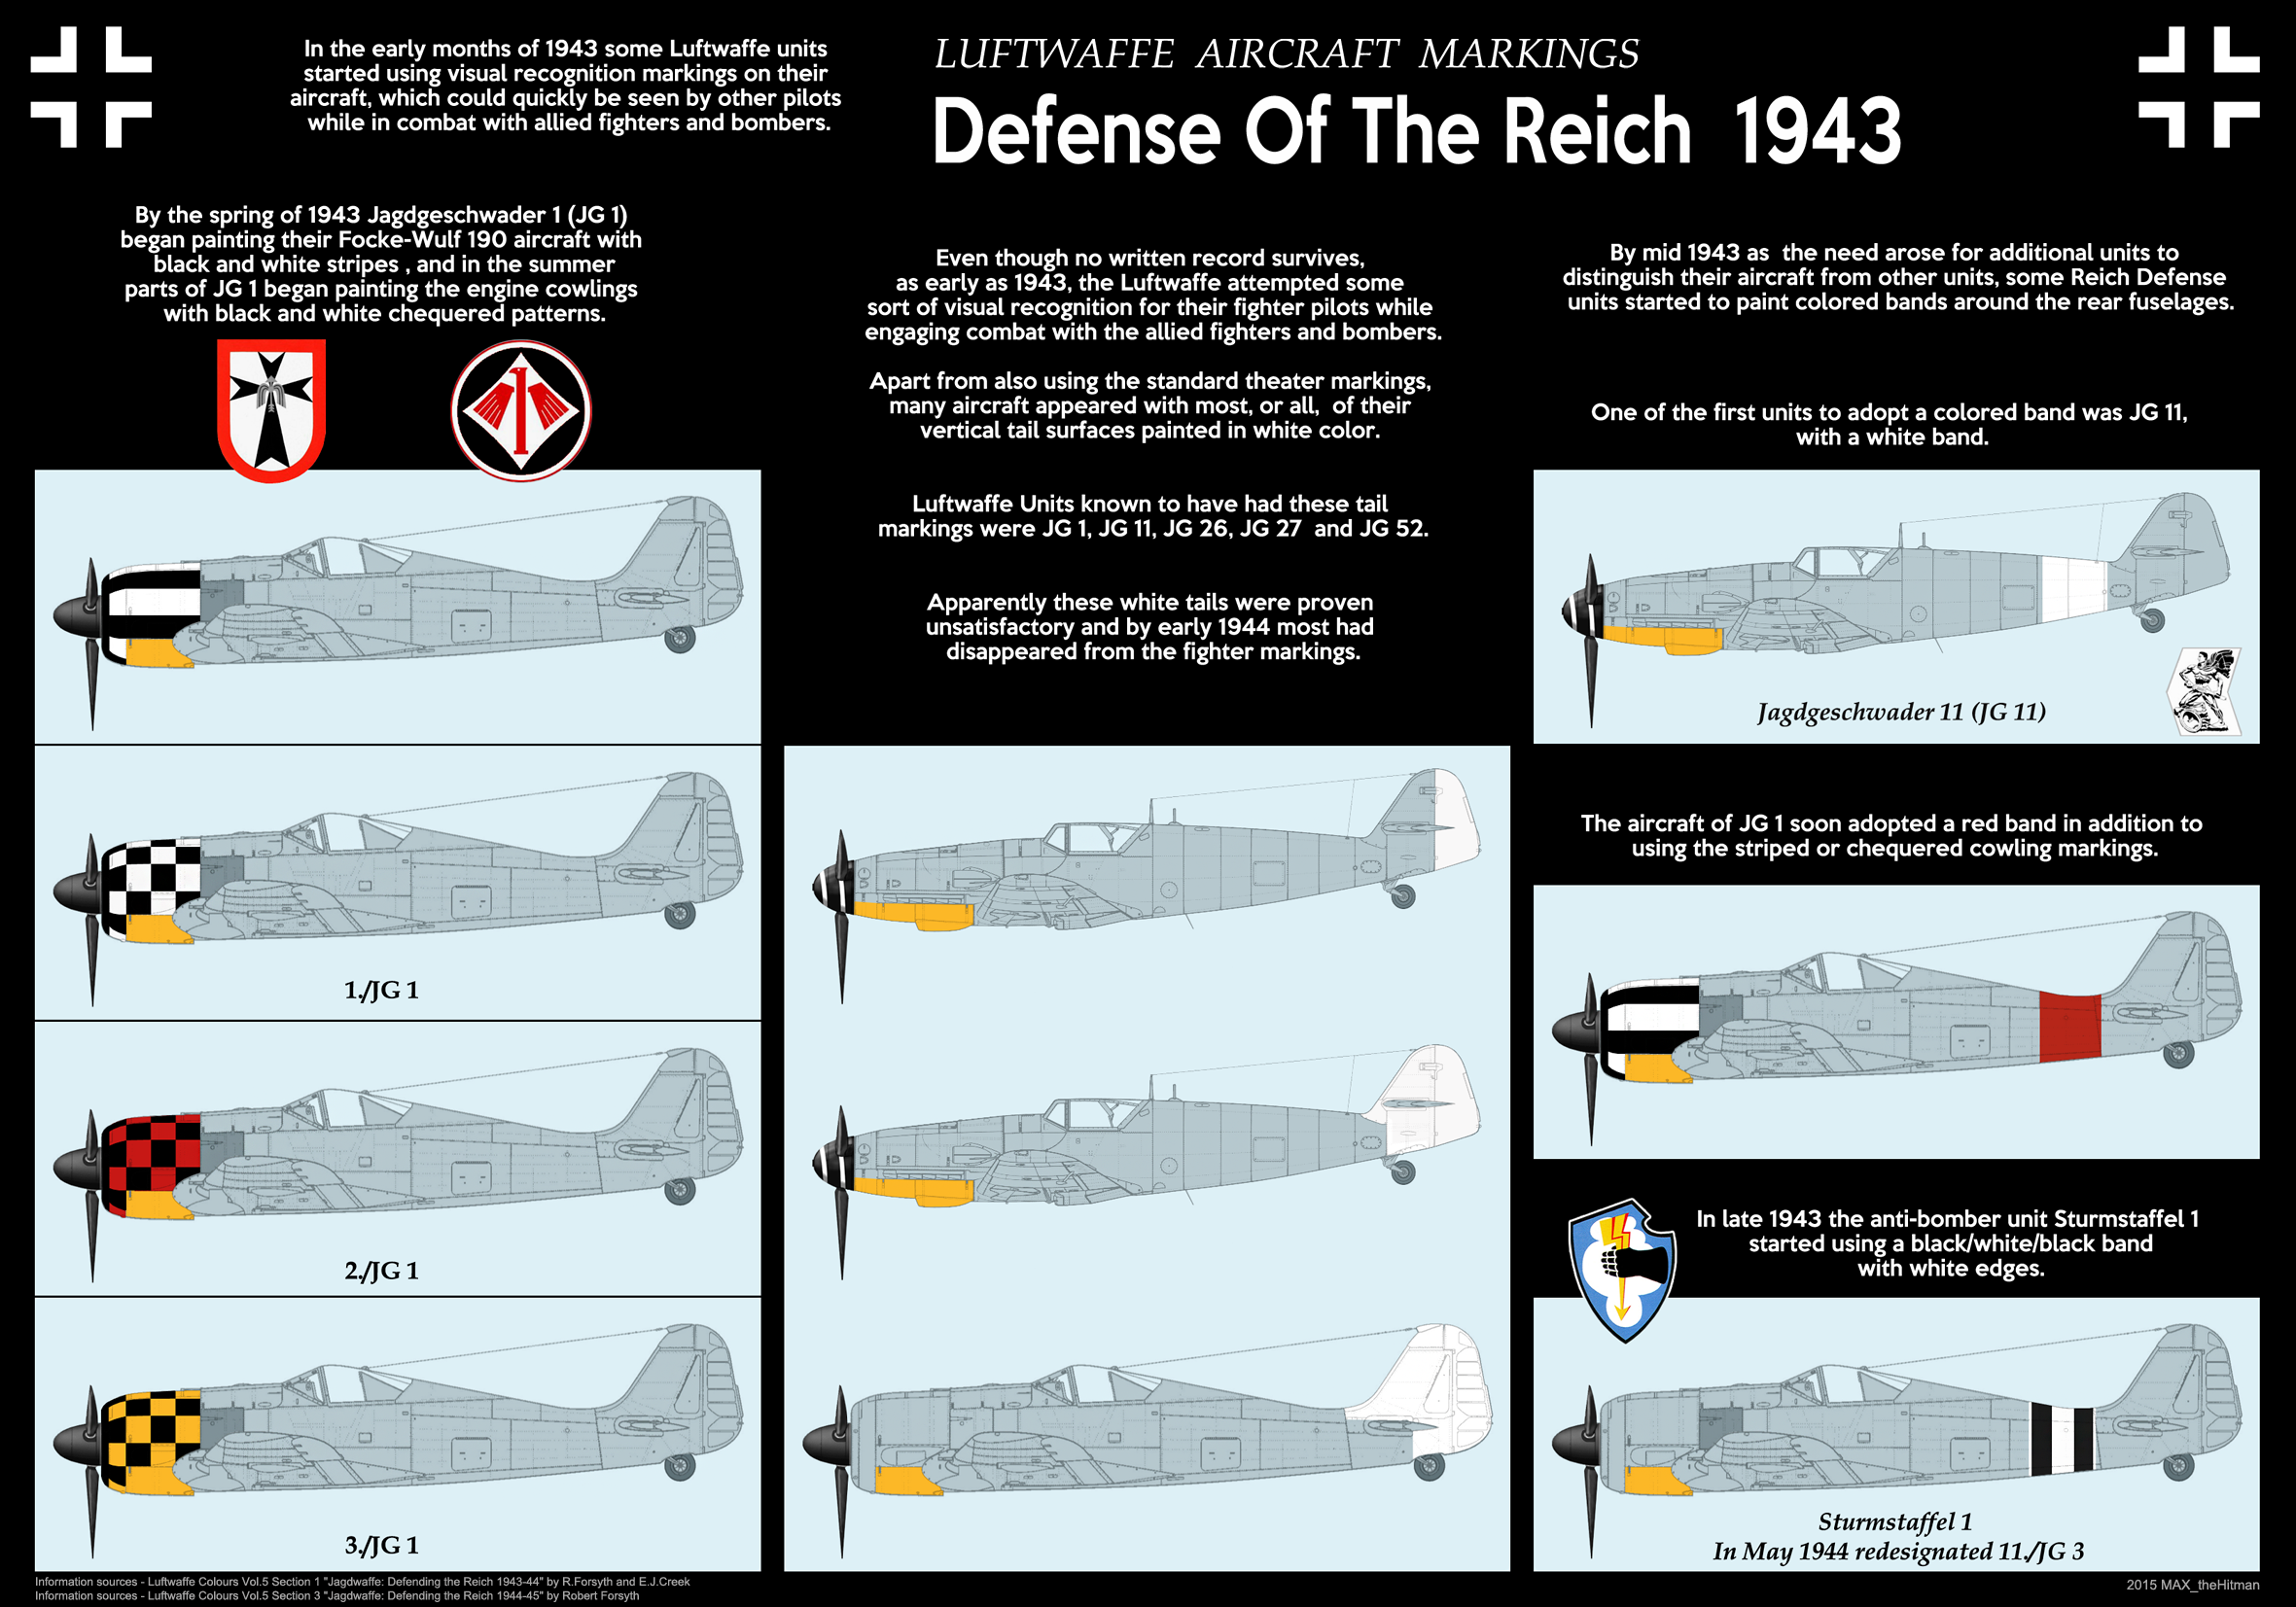 Luftwaffe Defense of the Reich 1943 by MaxHitman on DeviantArt